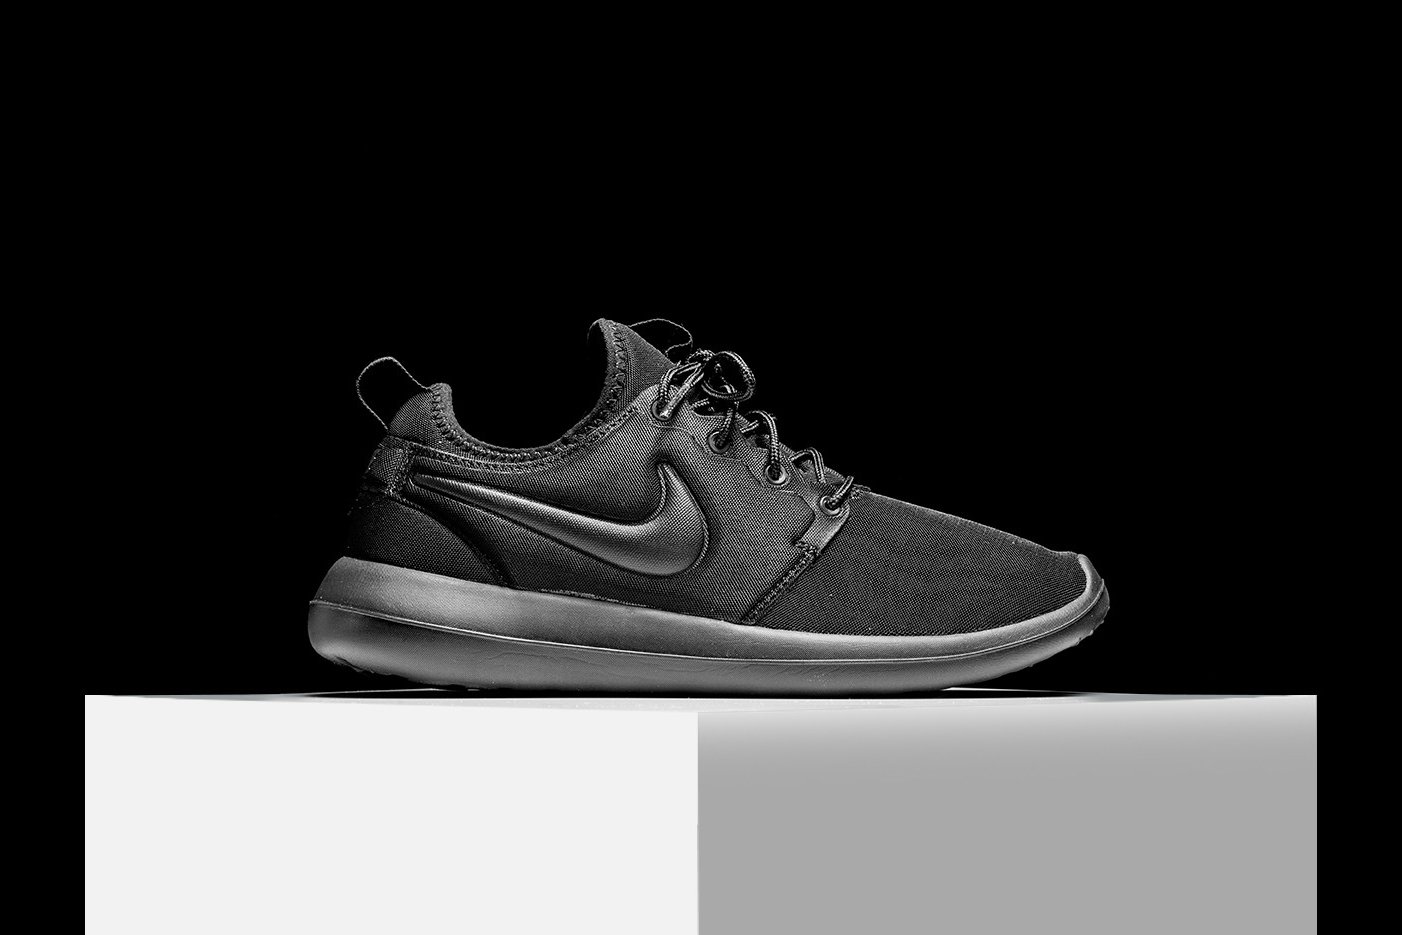 Nike Roshe Two in Black  Stuff from Wearables